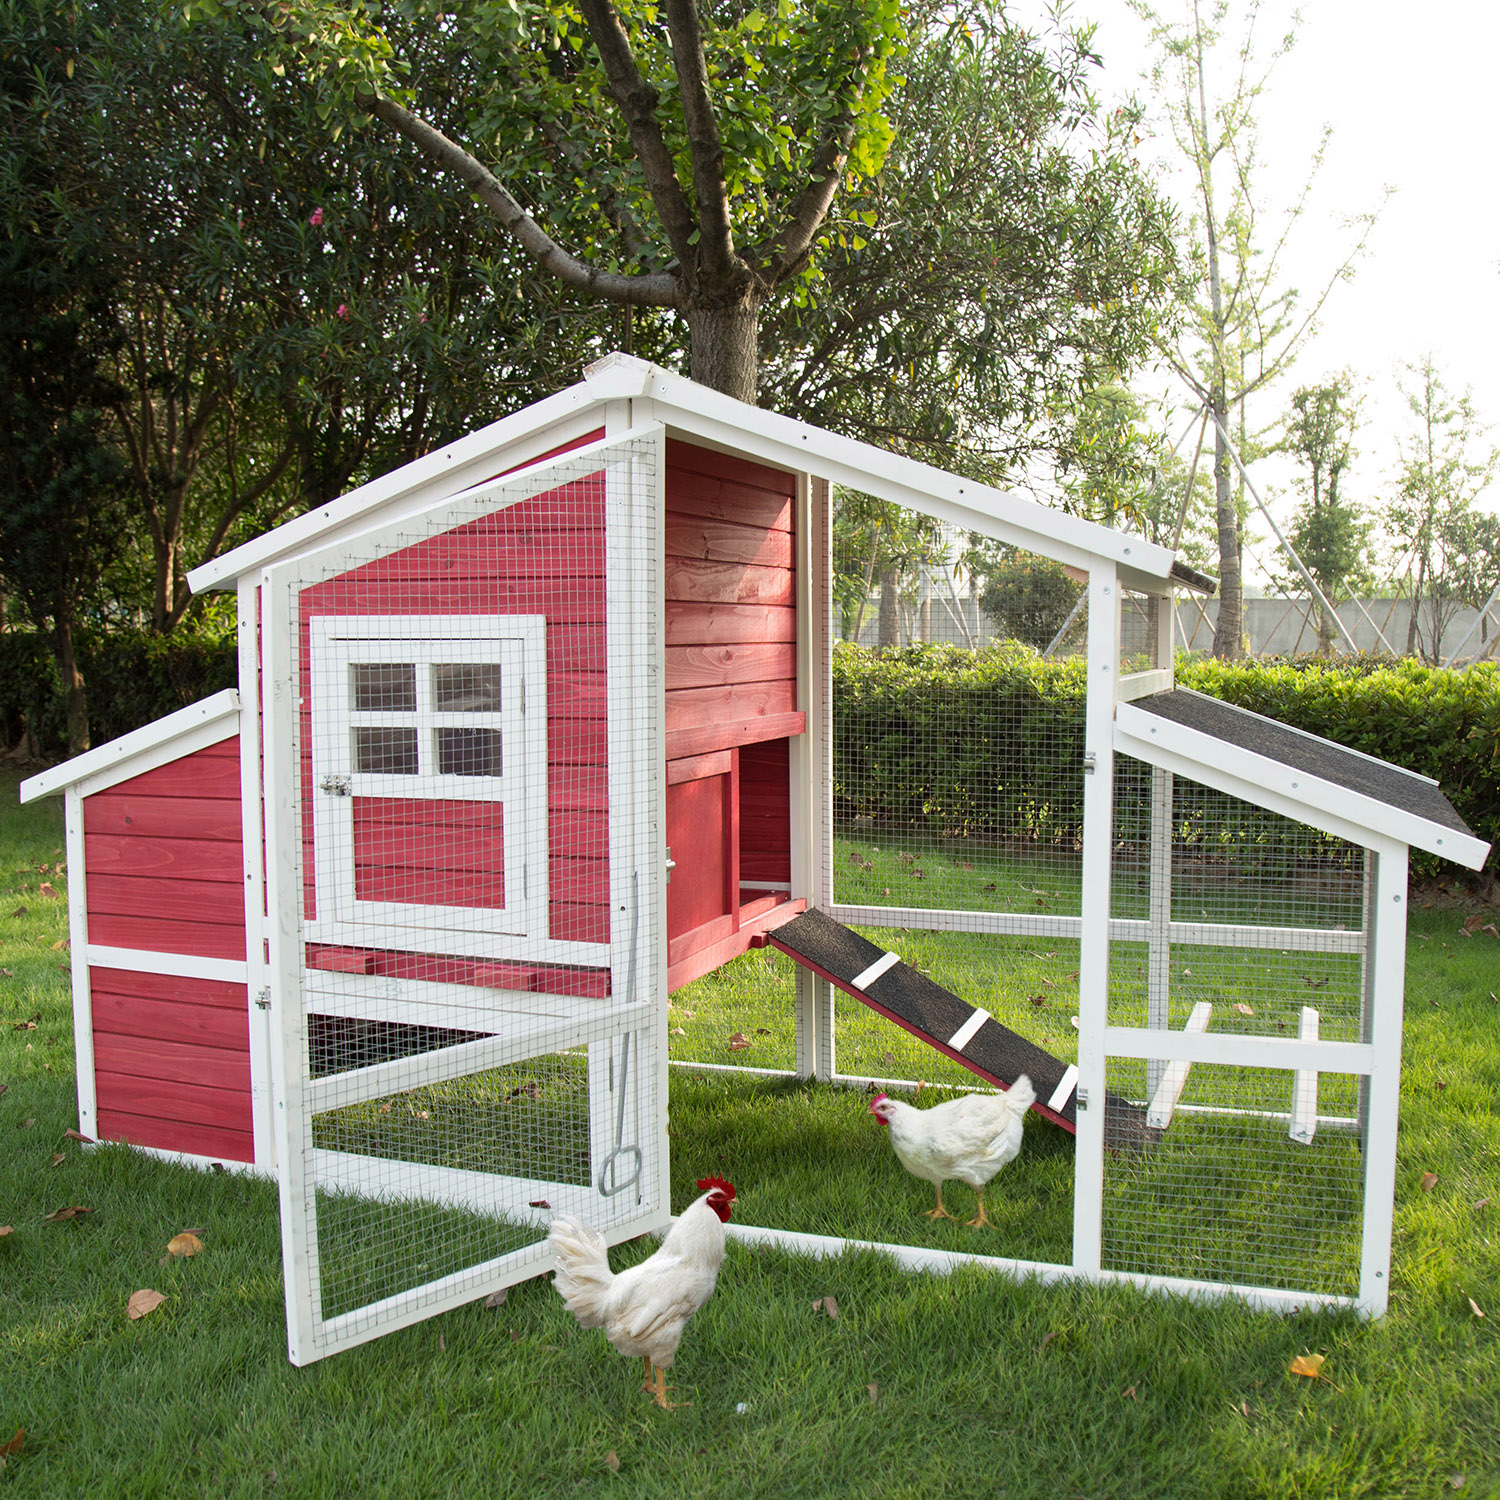 Kinbor 2 Tire Wooden Backyard Chicken Coop Rabbit Hutch Poultry Cage With Removable Tray Run Area Nesting Box Wire Fence For Birds Walmart Com Walmart Com